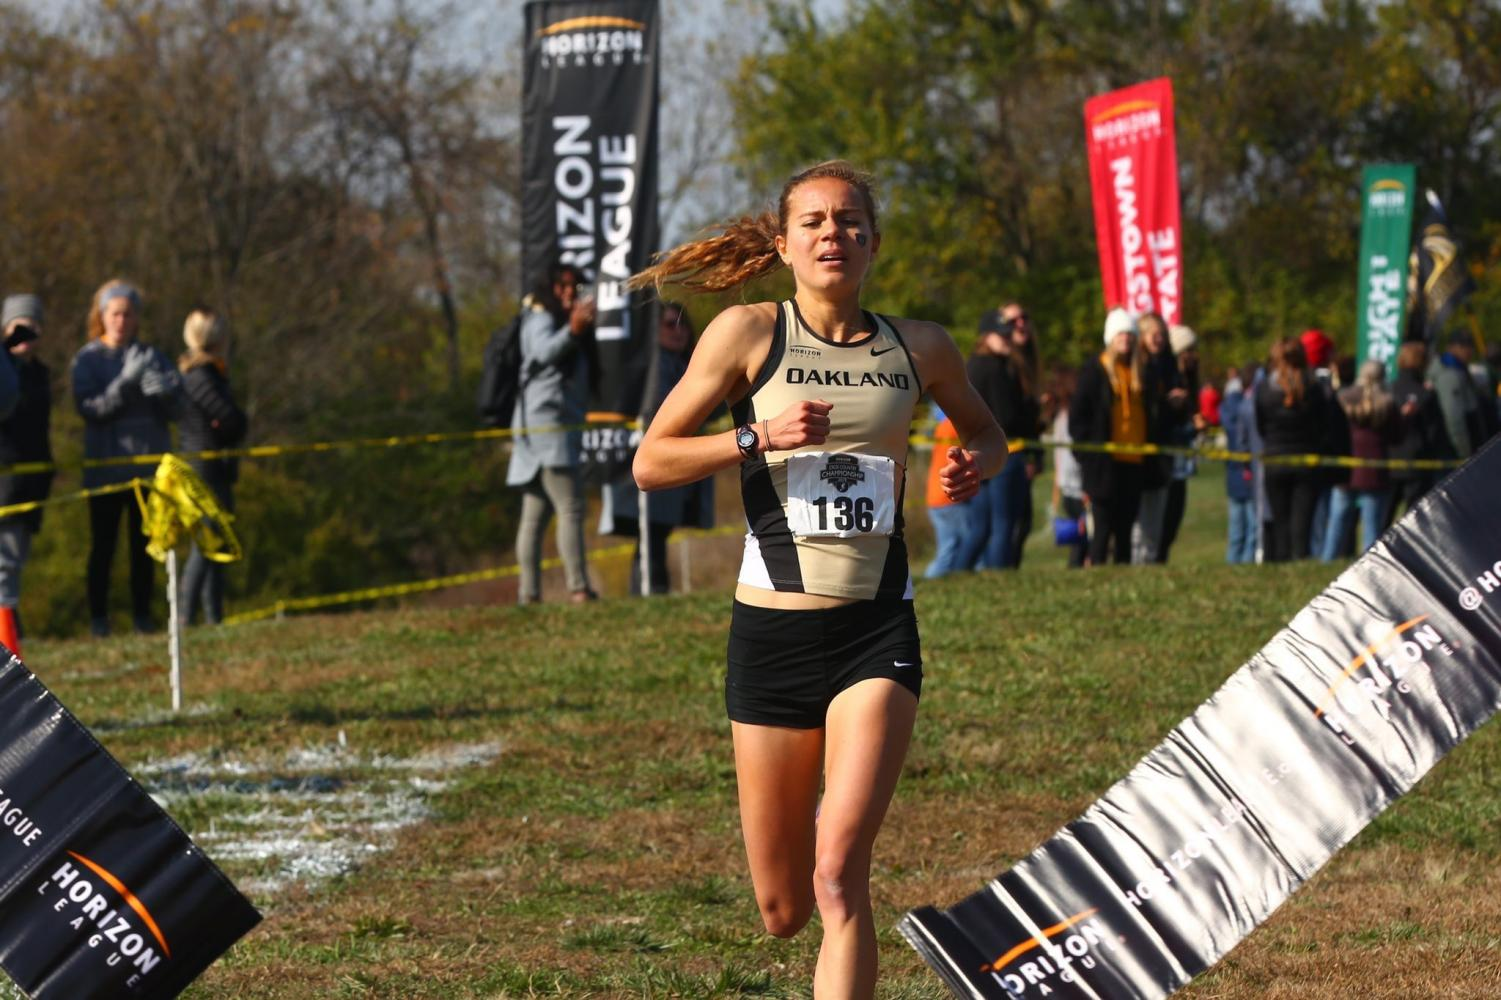 Cross-country runner Maggie Schneider is the first three-time Horizon League Champion in Oakland's history.